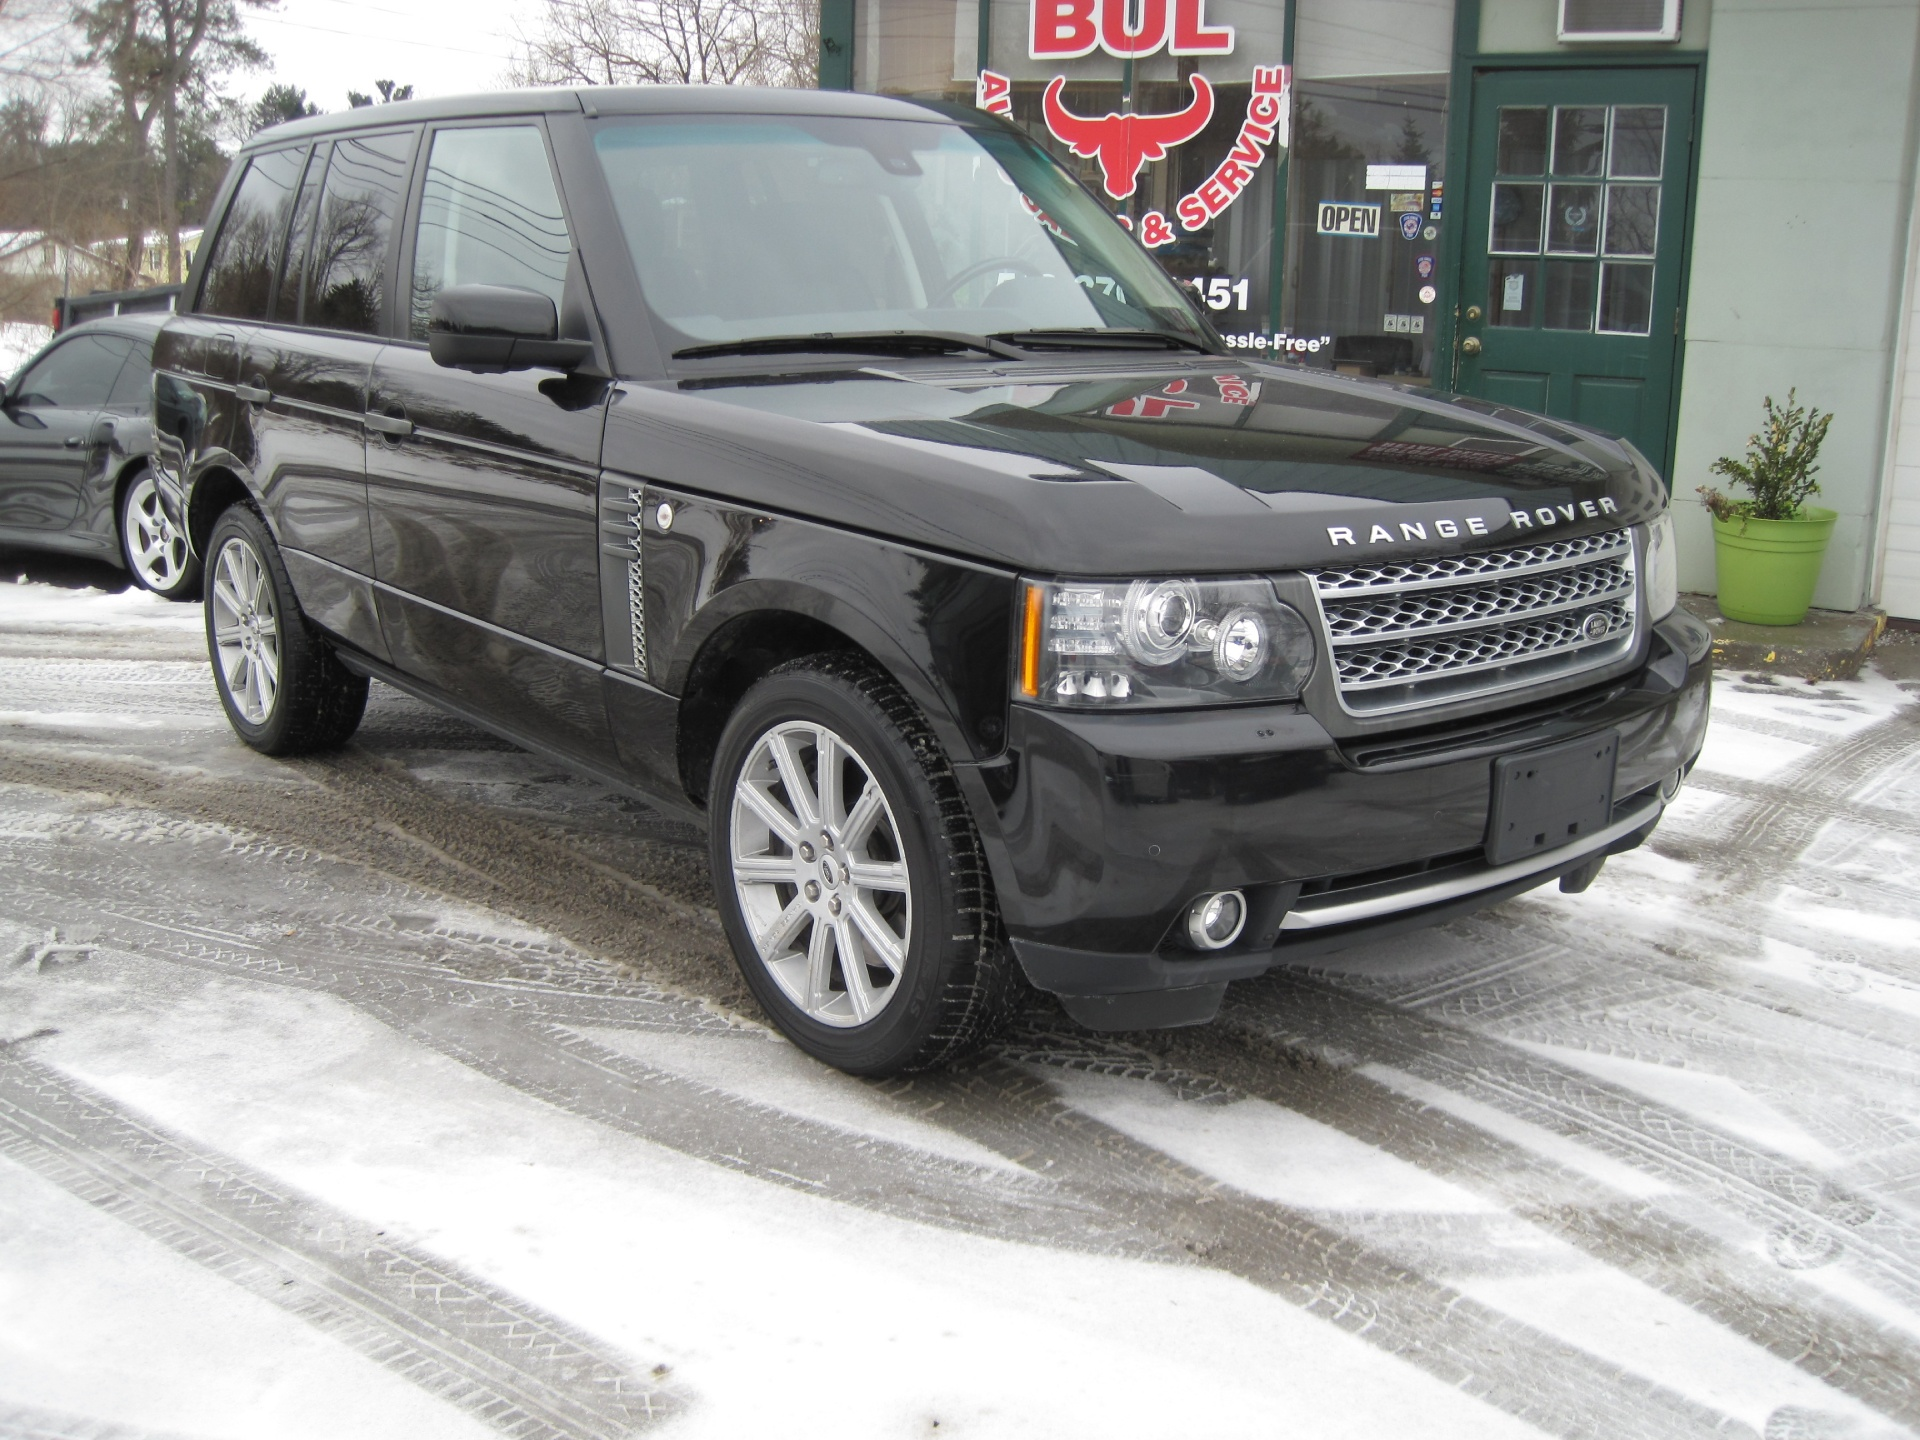 Owner Land Rover